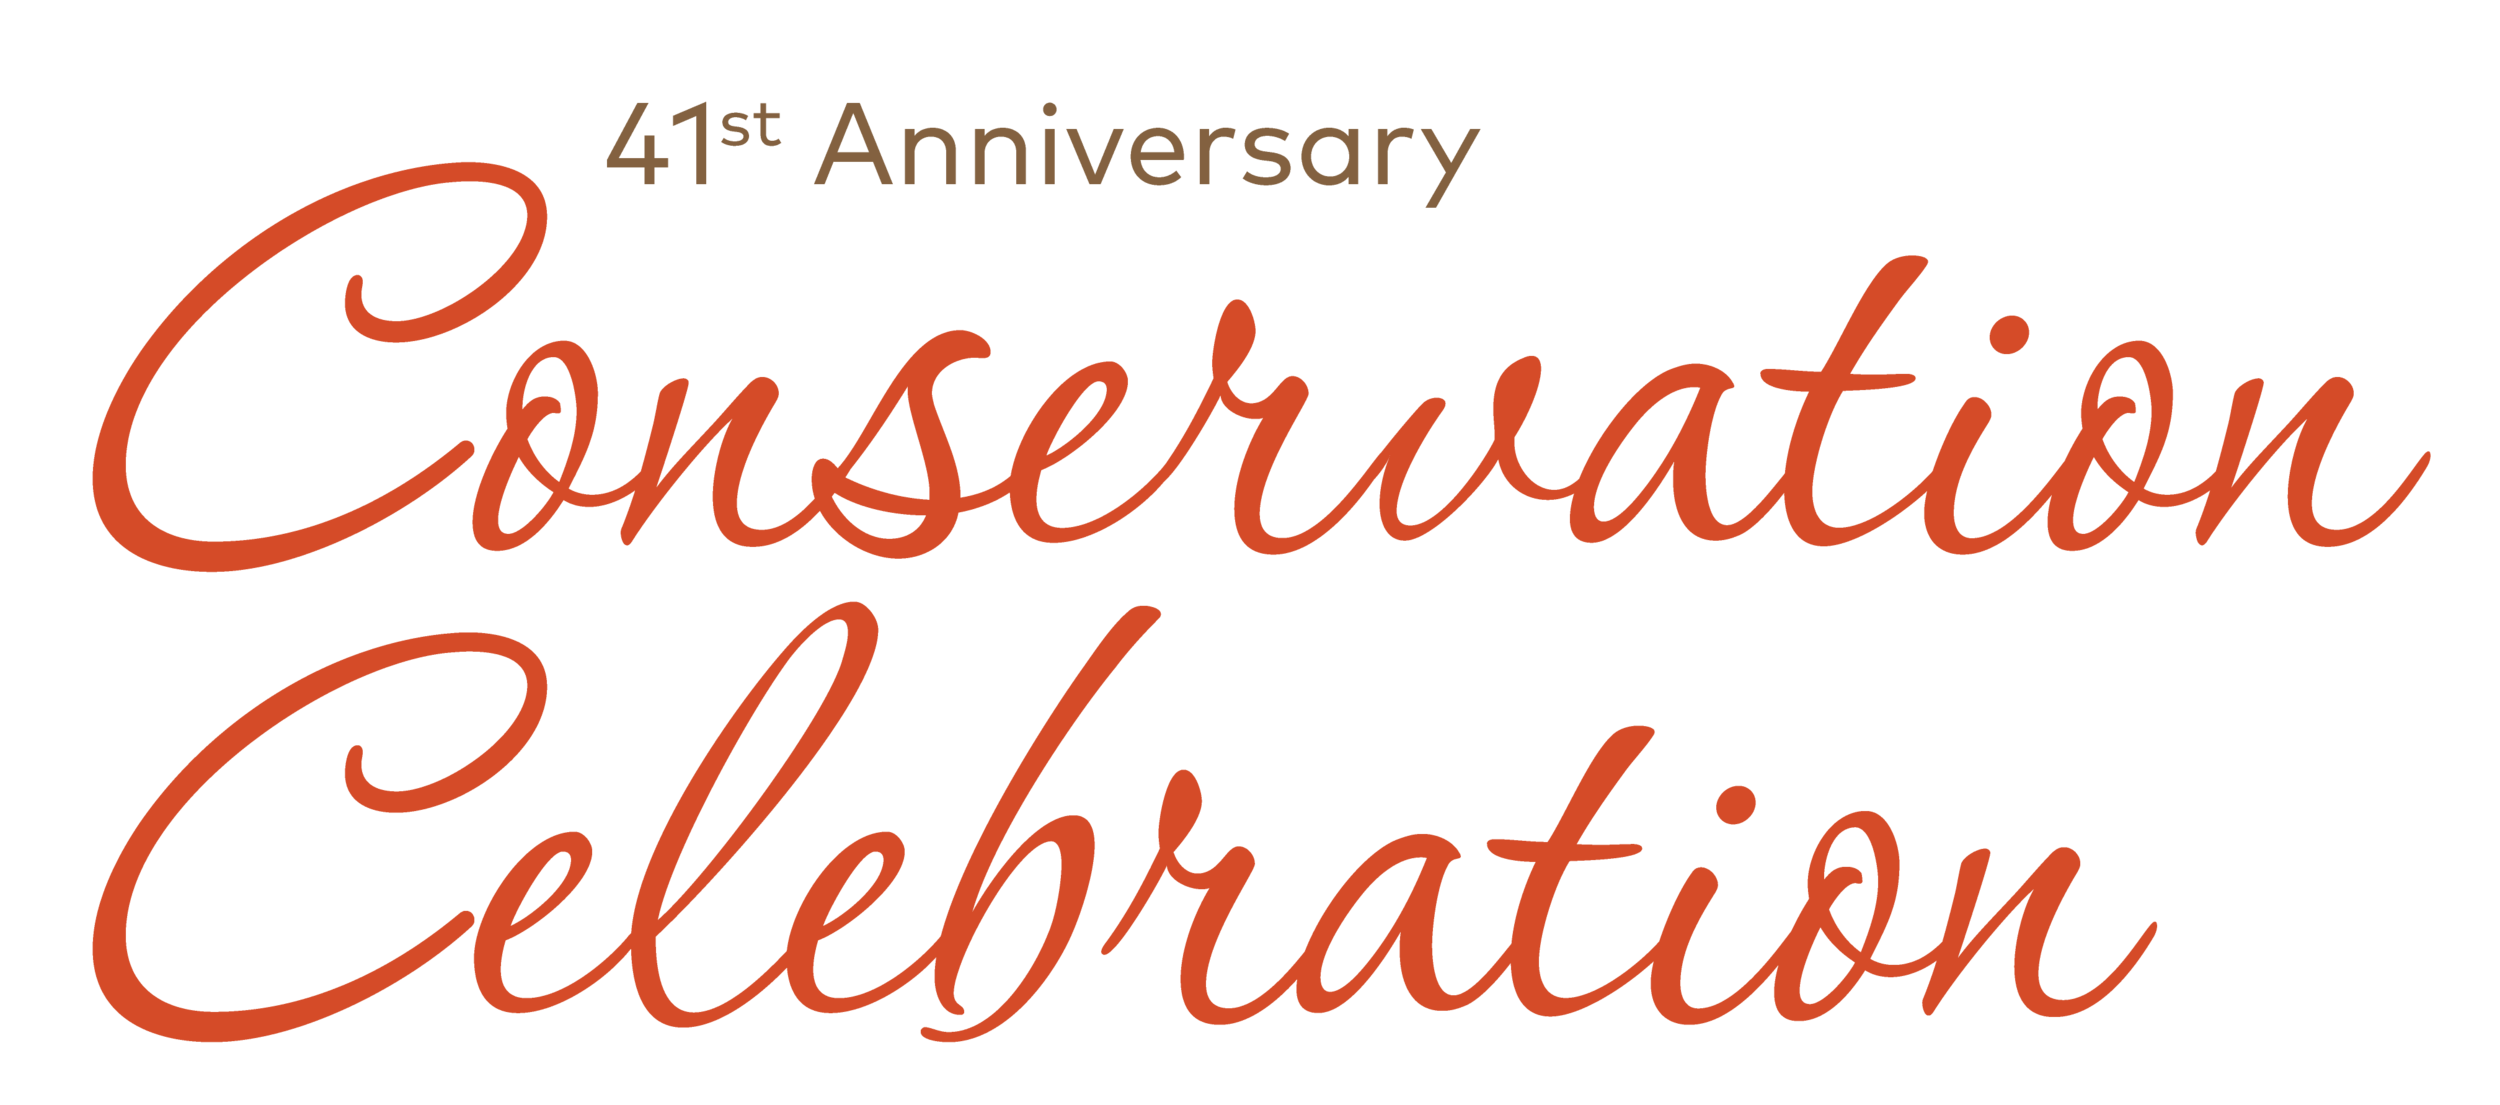 SOLCCelebrate_Icon-JUSTConservationCelebration-Tall-Transp.png